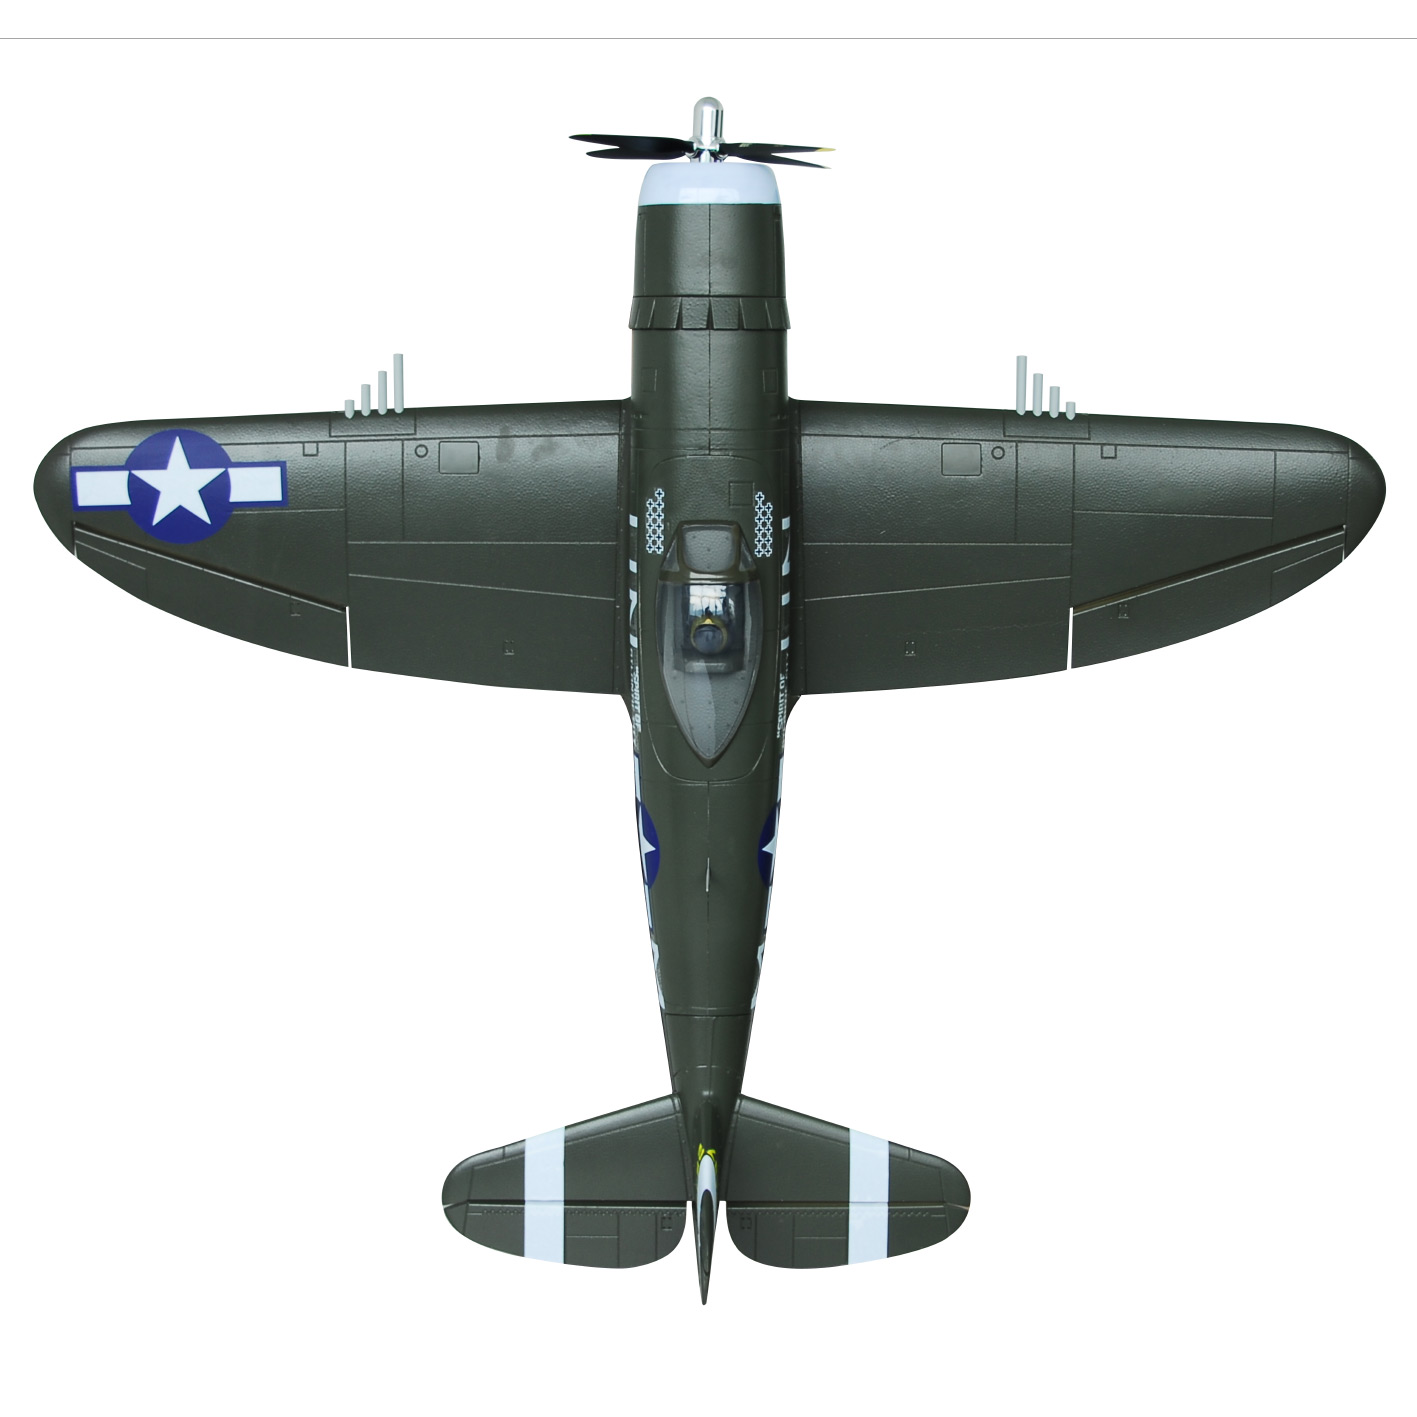 Details about FMS HOBBY P47 EPO 1400mm RC Model Airplane Warbird KIT  without electronic part